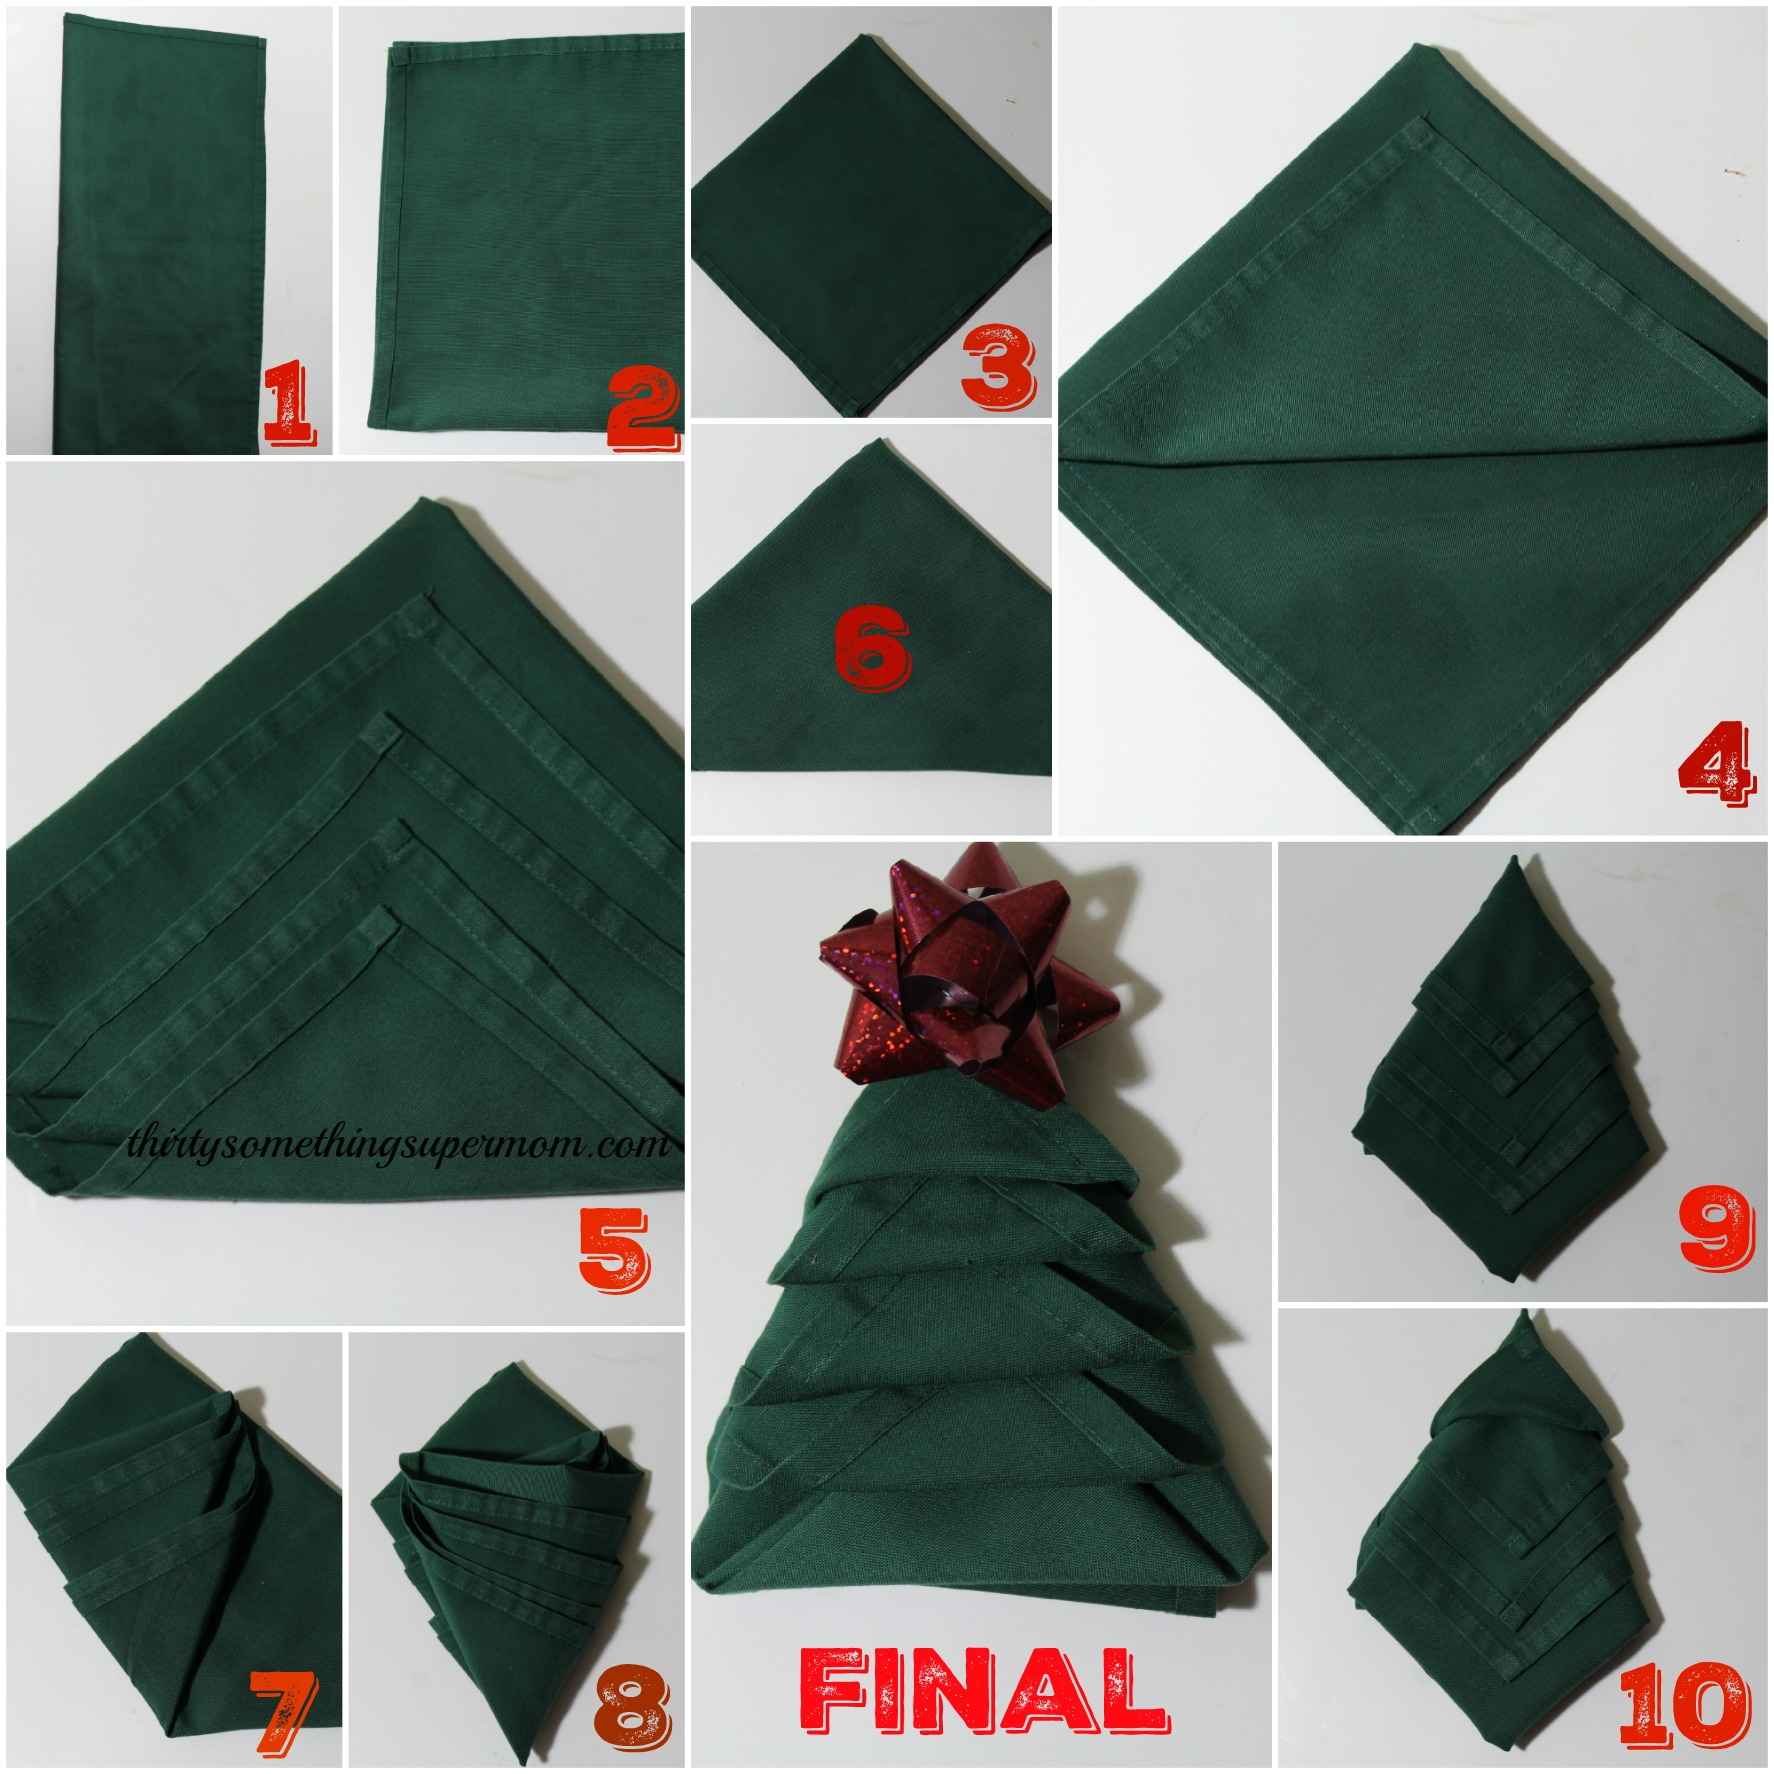 How to Fold Napkins into Christmas Trees - ThirtySomethingSuperMom